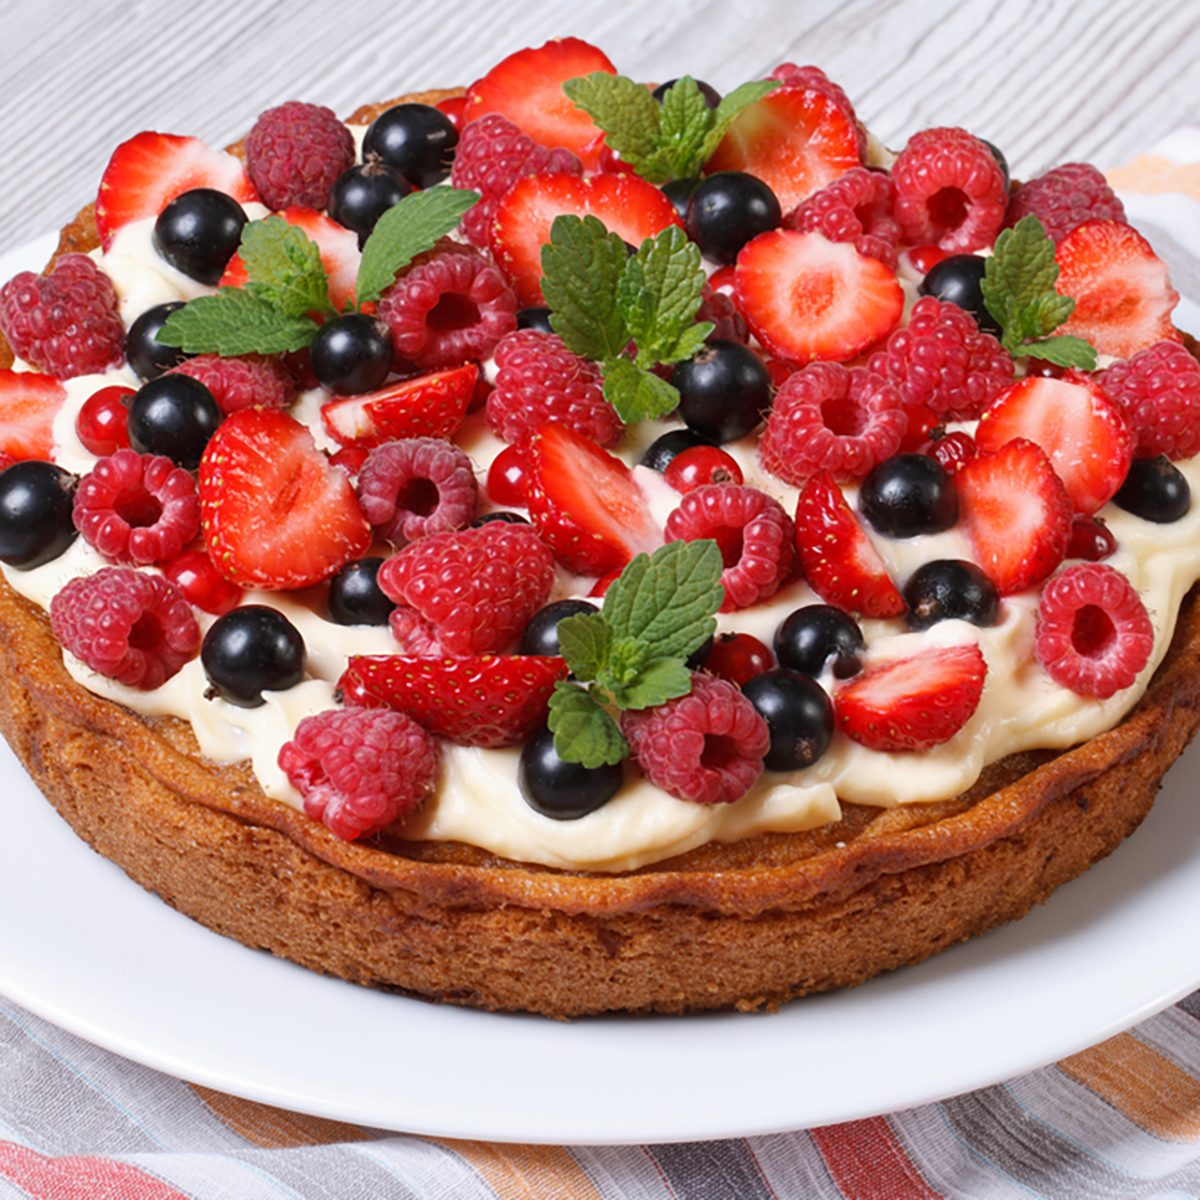 berry tart with fresh strawberries, raspberries, currants, mint and cream close up on the table